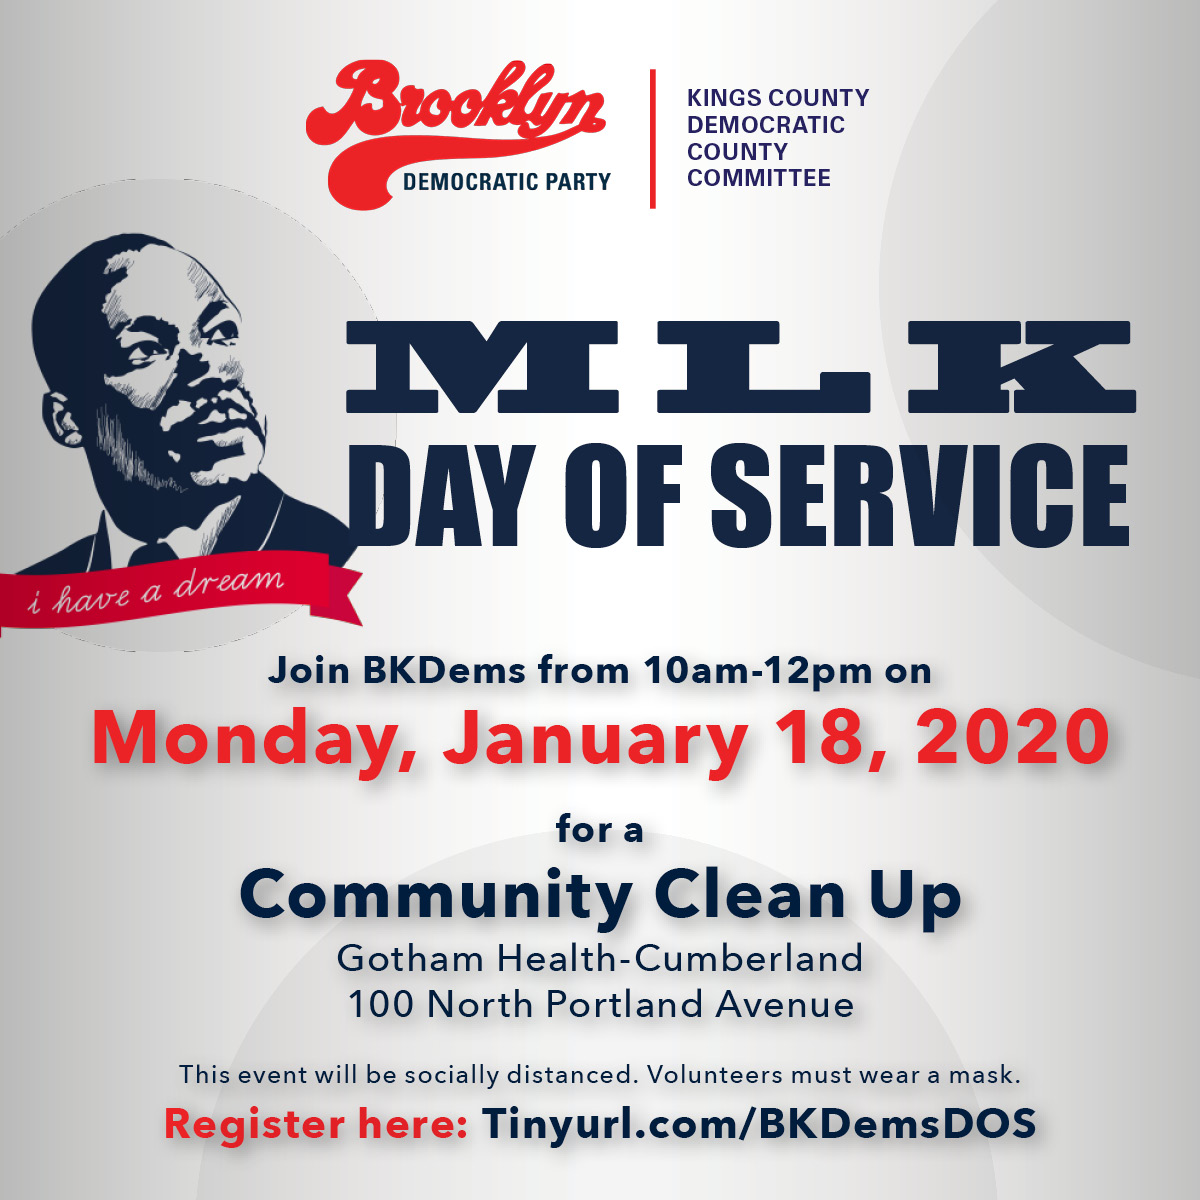 Join BKDems from 10am-12pm on Monday, January 18, 2020 for a Community Clean up Gotham Health-Cumberland 100 North Portland Avenue This event will be socially distanced. Volunteers must wear a mask. Register here: Tinyurl.com/BKDemsDOS